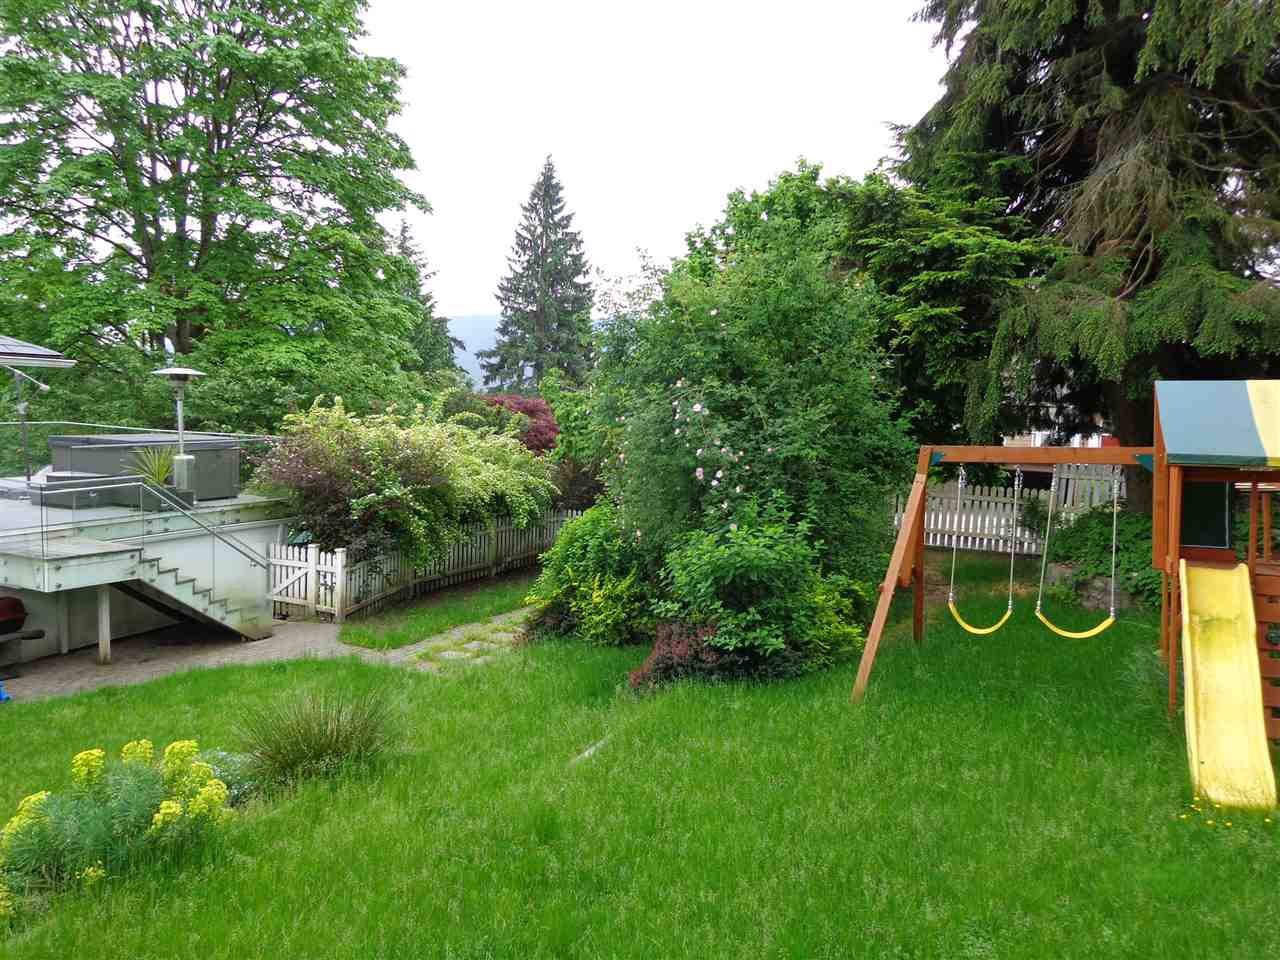 Photo 6: Photos: 4210 GLENHAVEN CRESCENT in North Vancouver: Dollarton House for sale : MLS®# R2373969